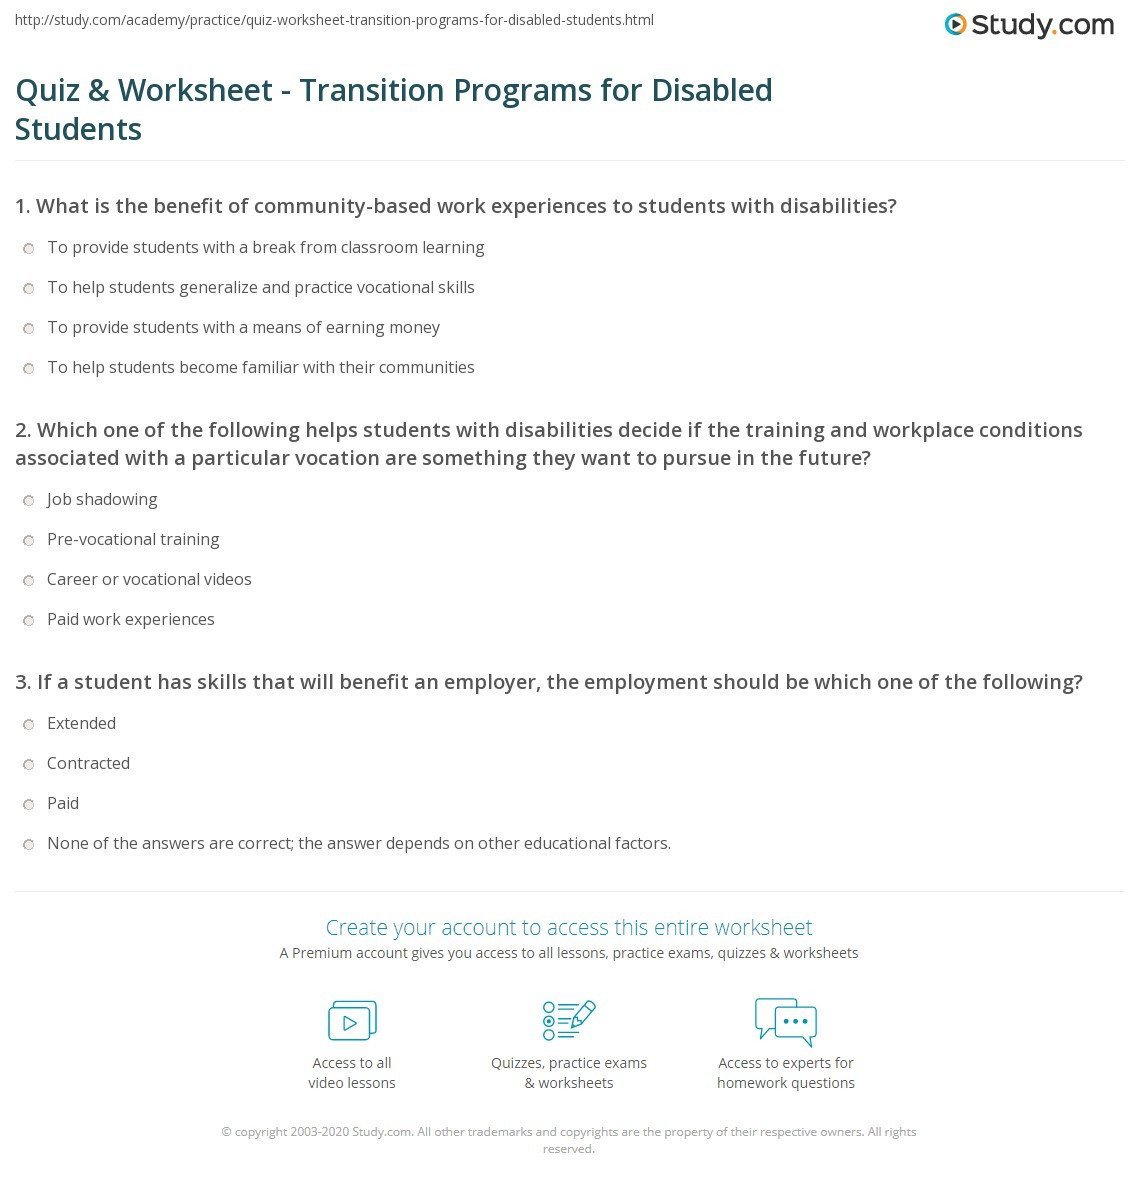 quiz worksheet transition programs for disabled students